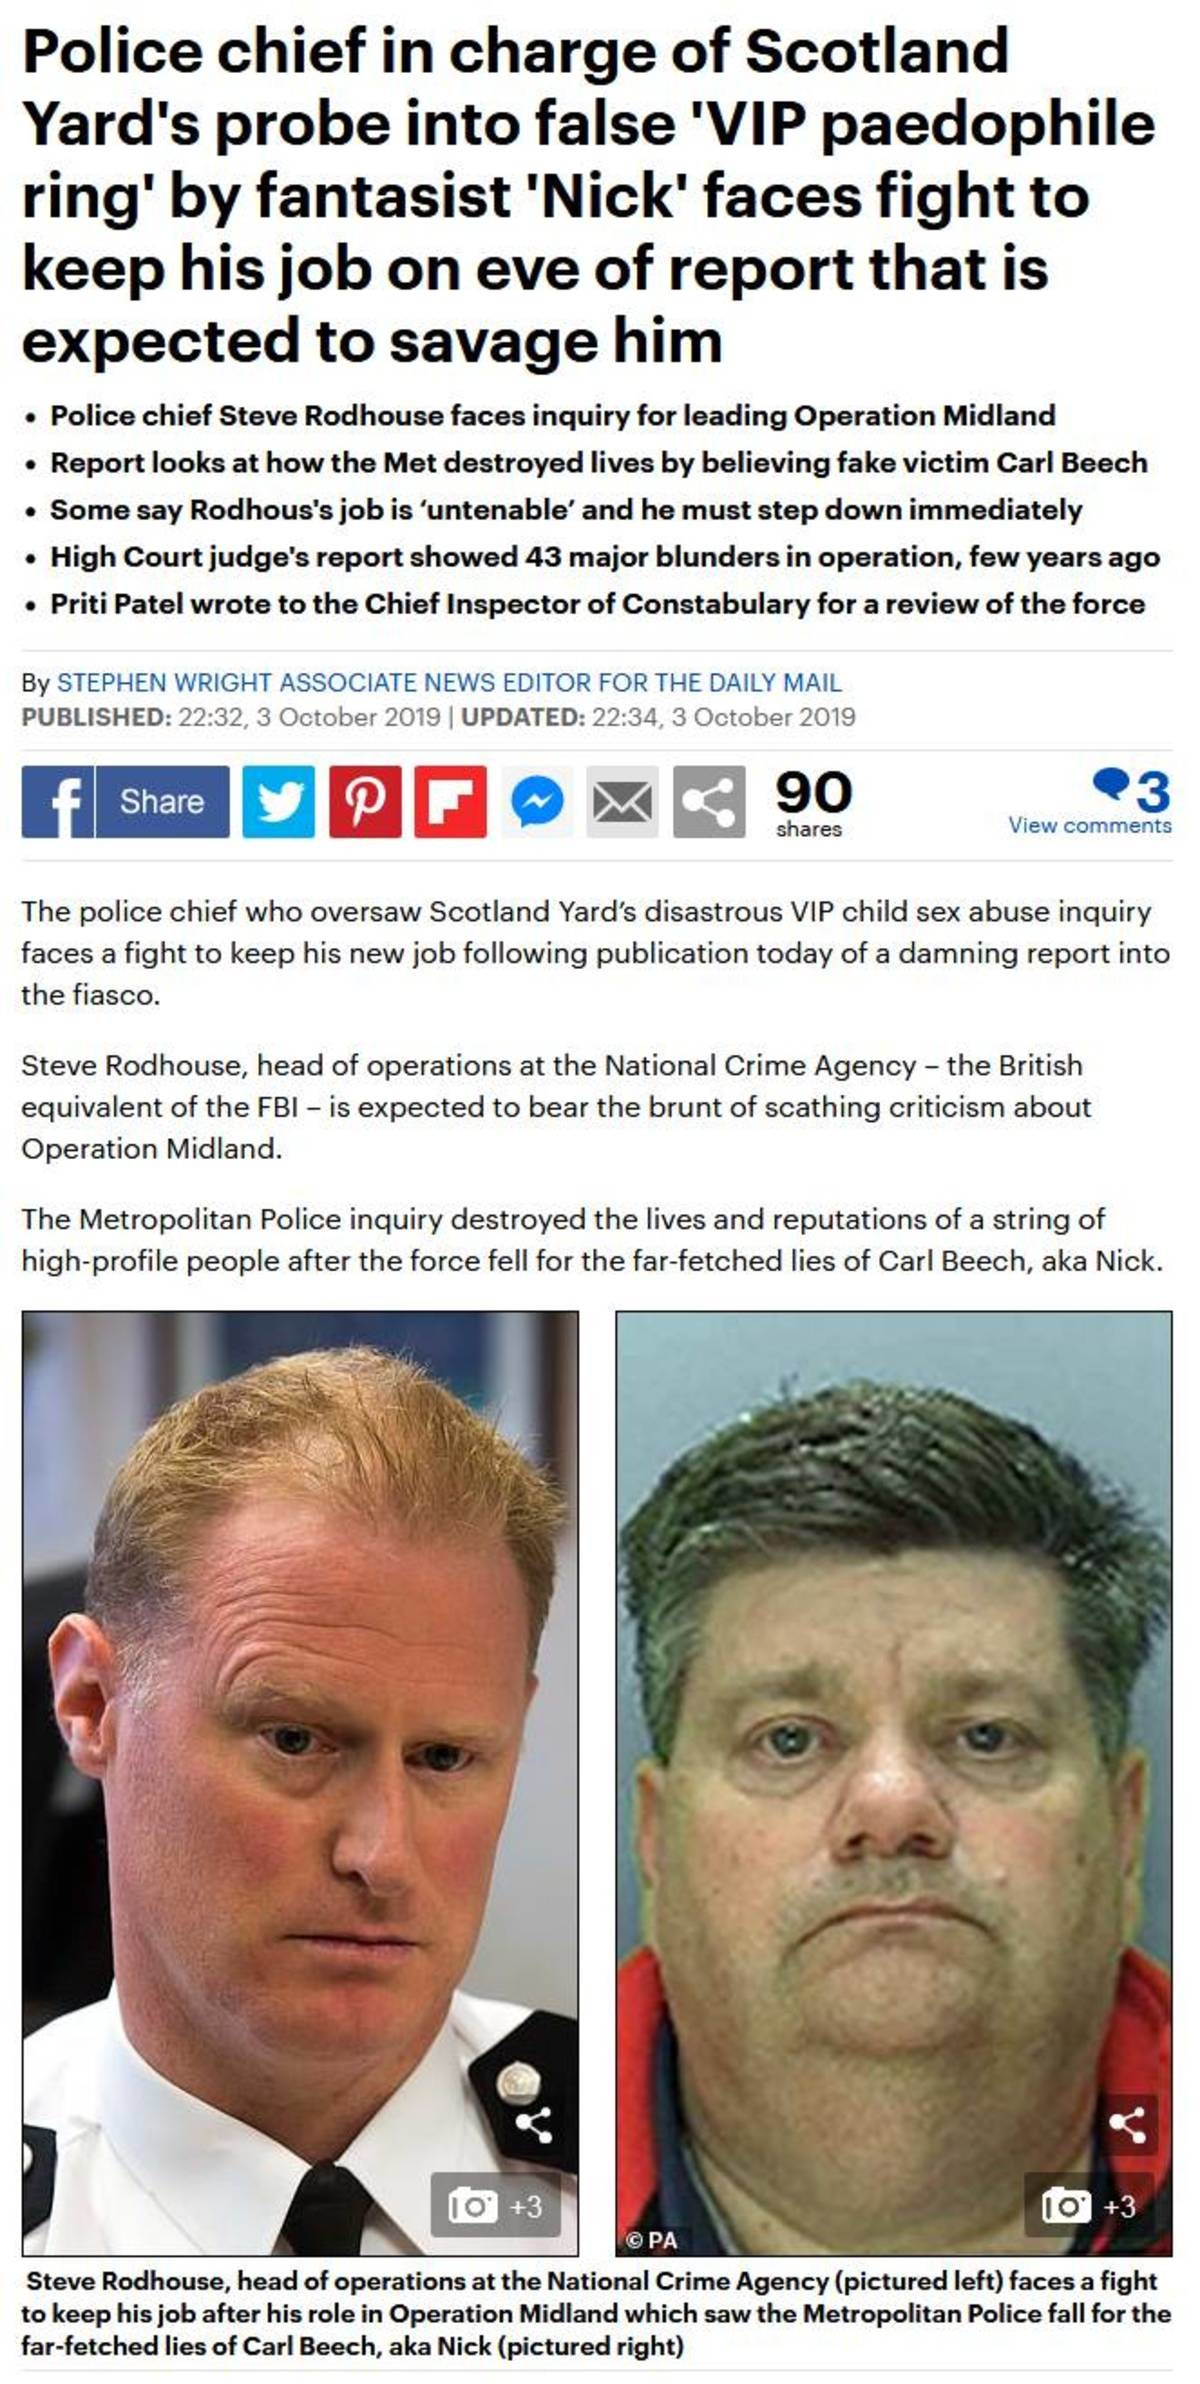 UK pedo cover-up. TFW you are investigating pedos And the pedos tell you you are investigating a fantasy And if you don't stop you are fired... So here's why Op Midland was a hilarious : The only people who came forward were a mentally ill fantastist, a fraudster, and a labour party activist. All three